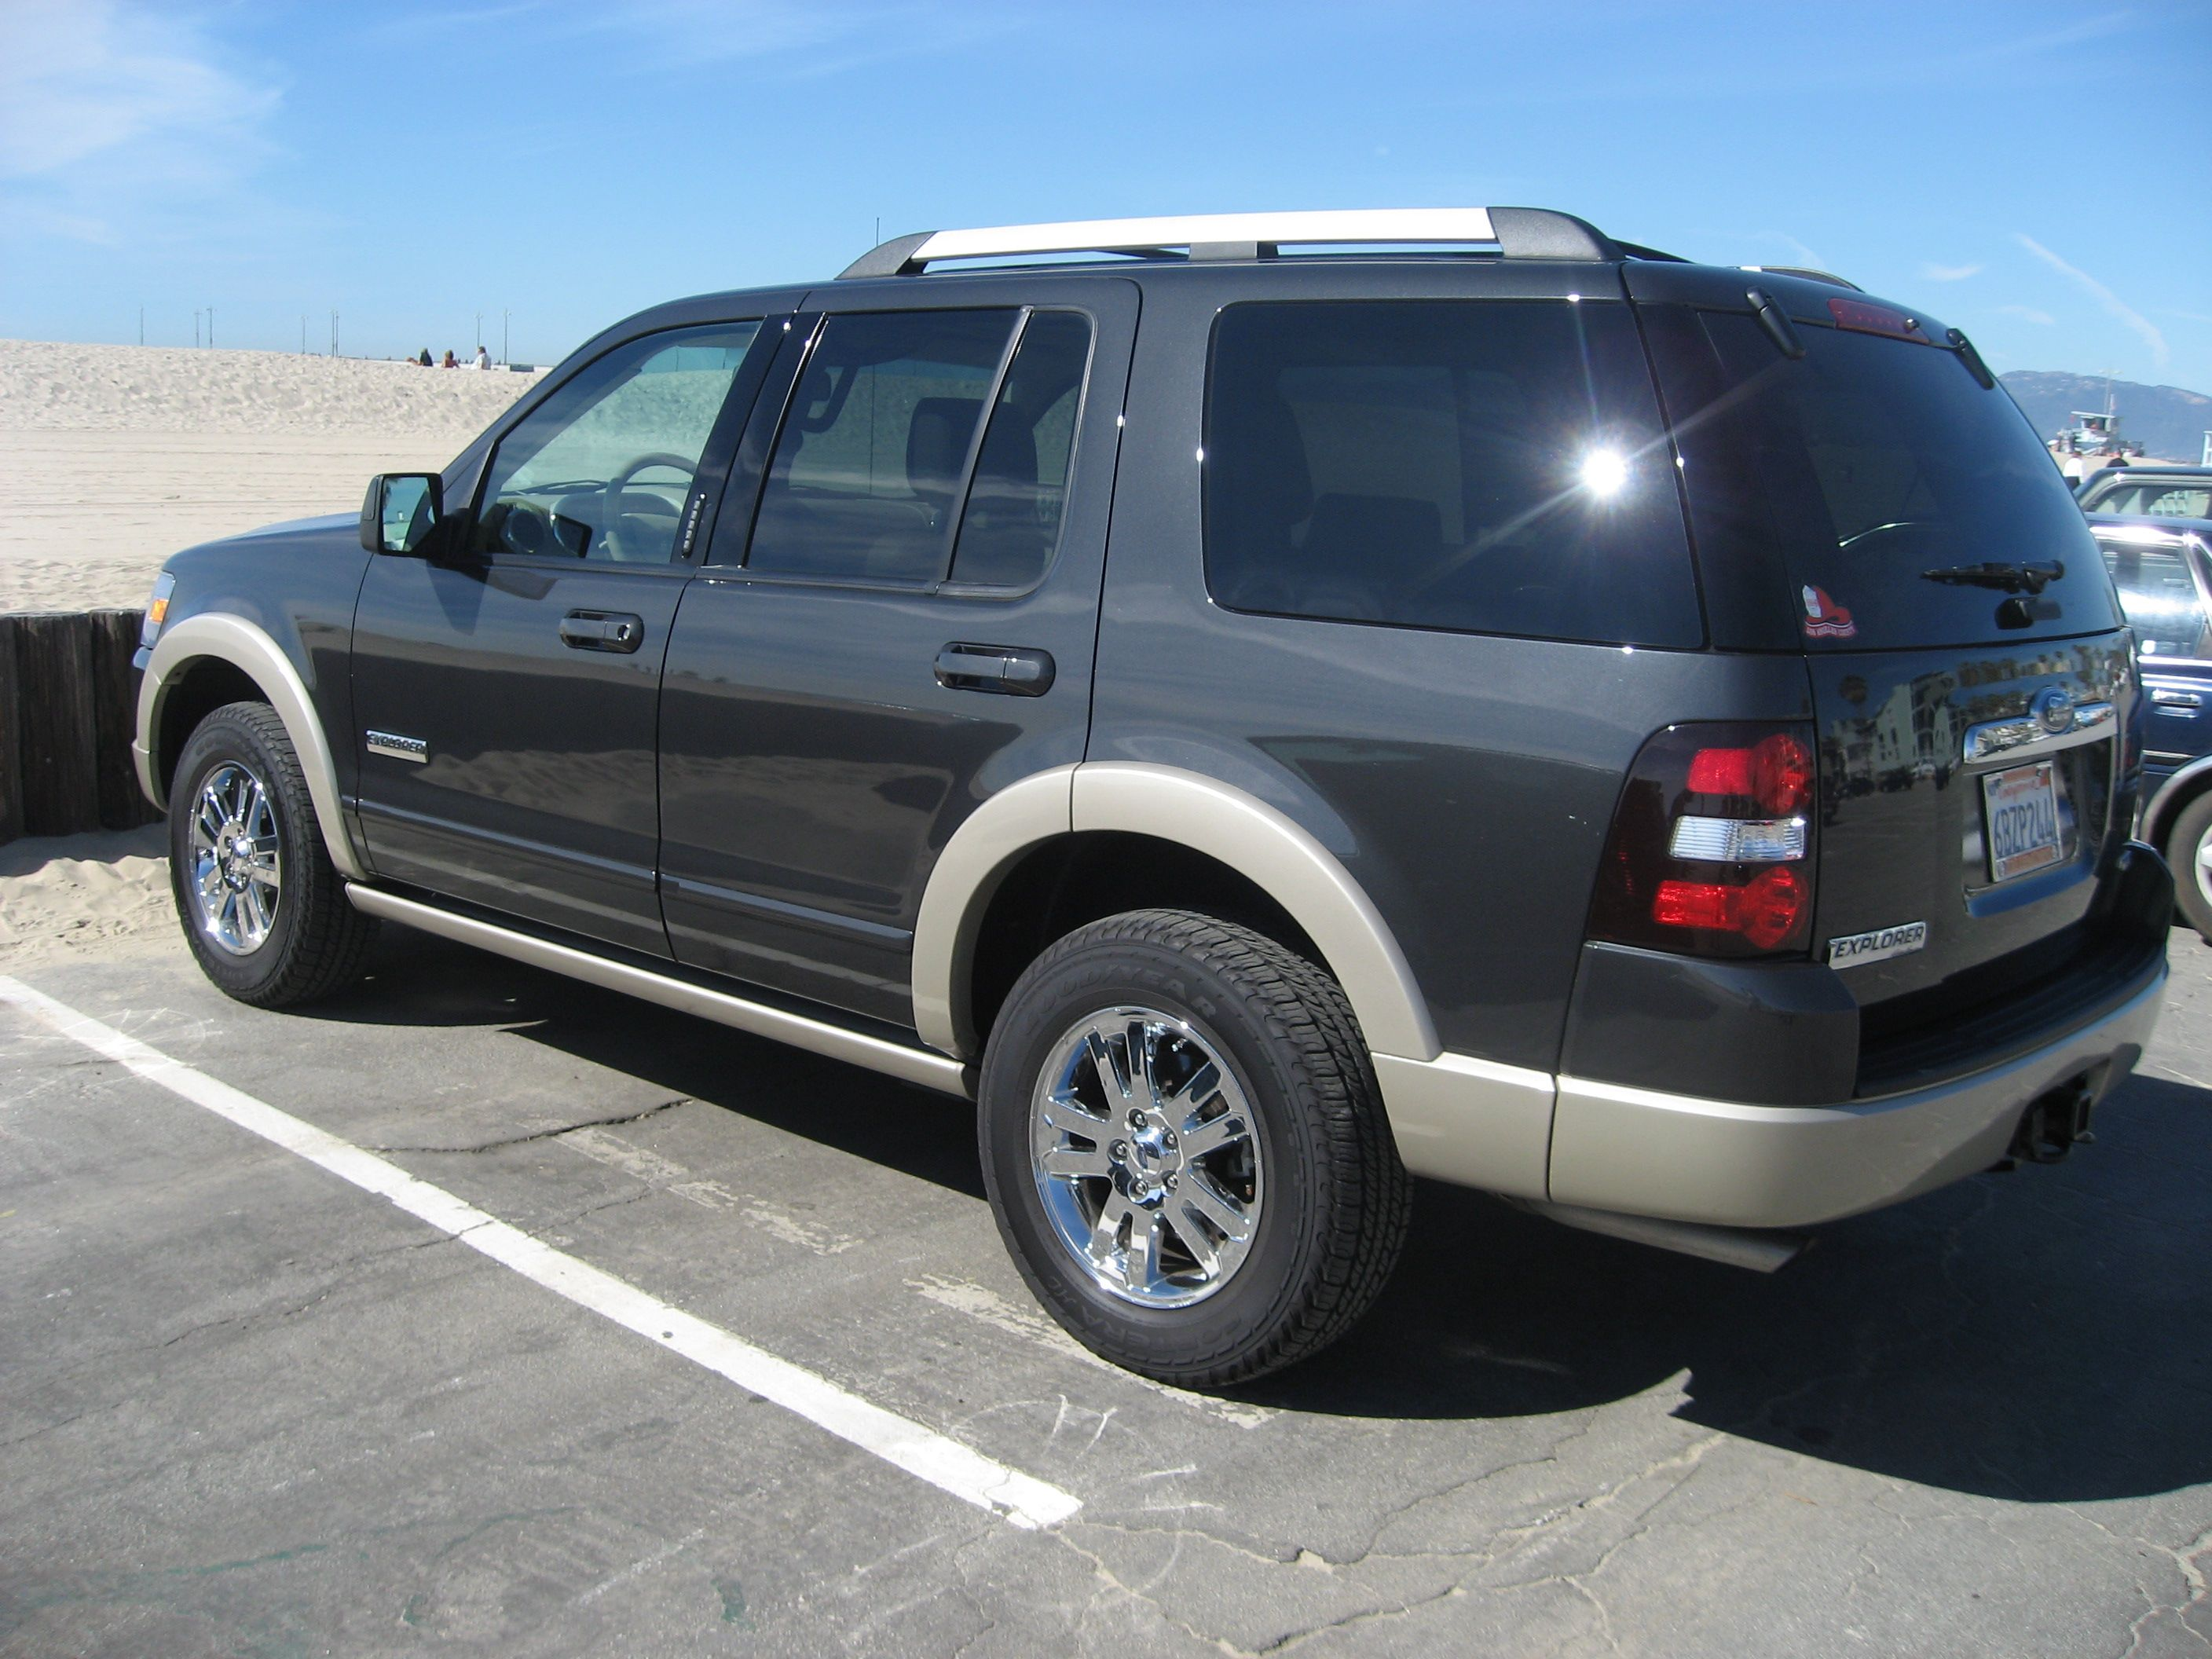 2007 Ford Explorer Eddie Bauer Edition there is one at carmax in